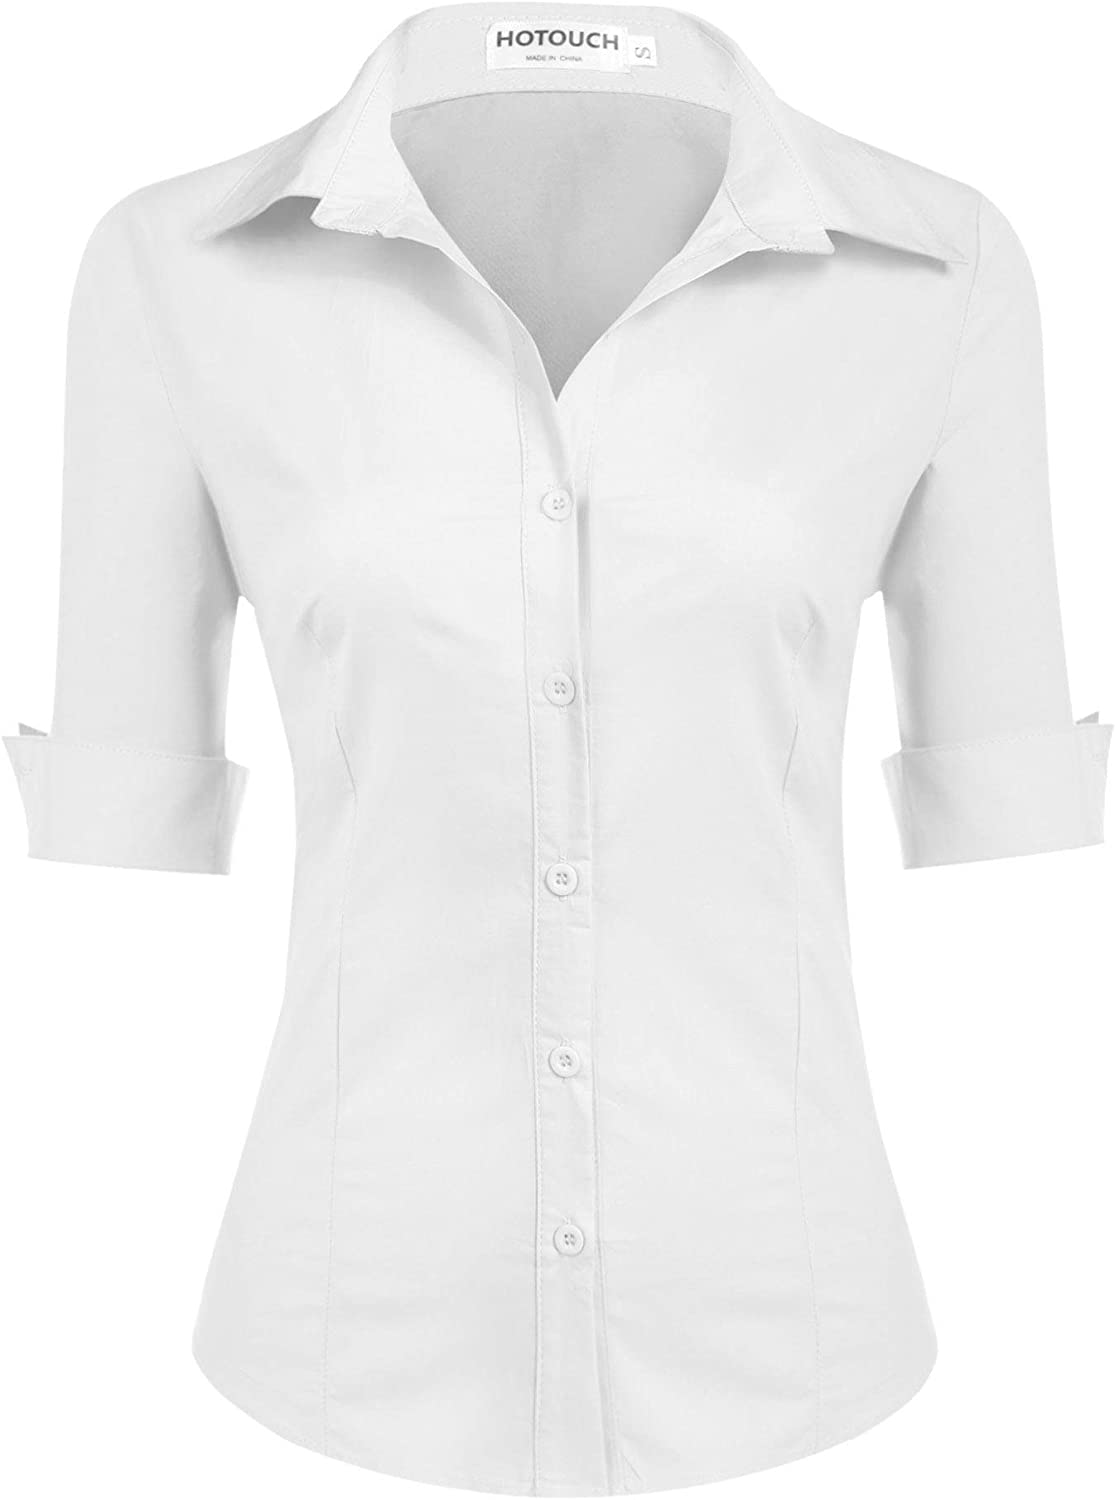 Hotouch Womens 3/4 Sleeve Basic Button Down Shirt Slim Fit Cotton Dress Shirts